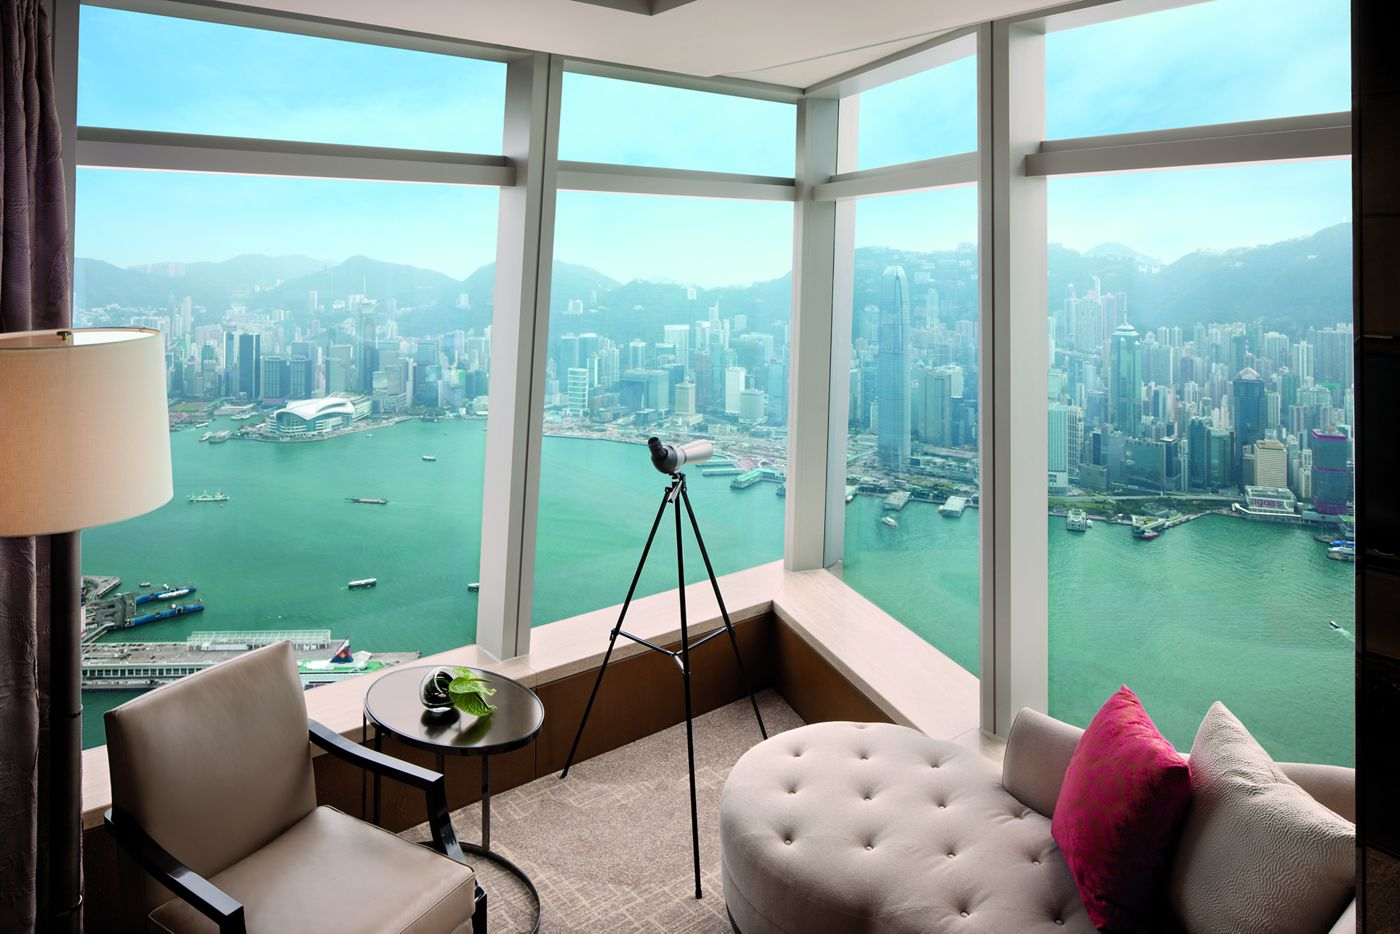 a view of a lake and city skyline from a hotel room at the Ritz Carlton in Hong Kong